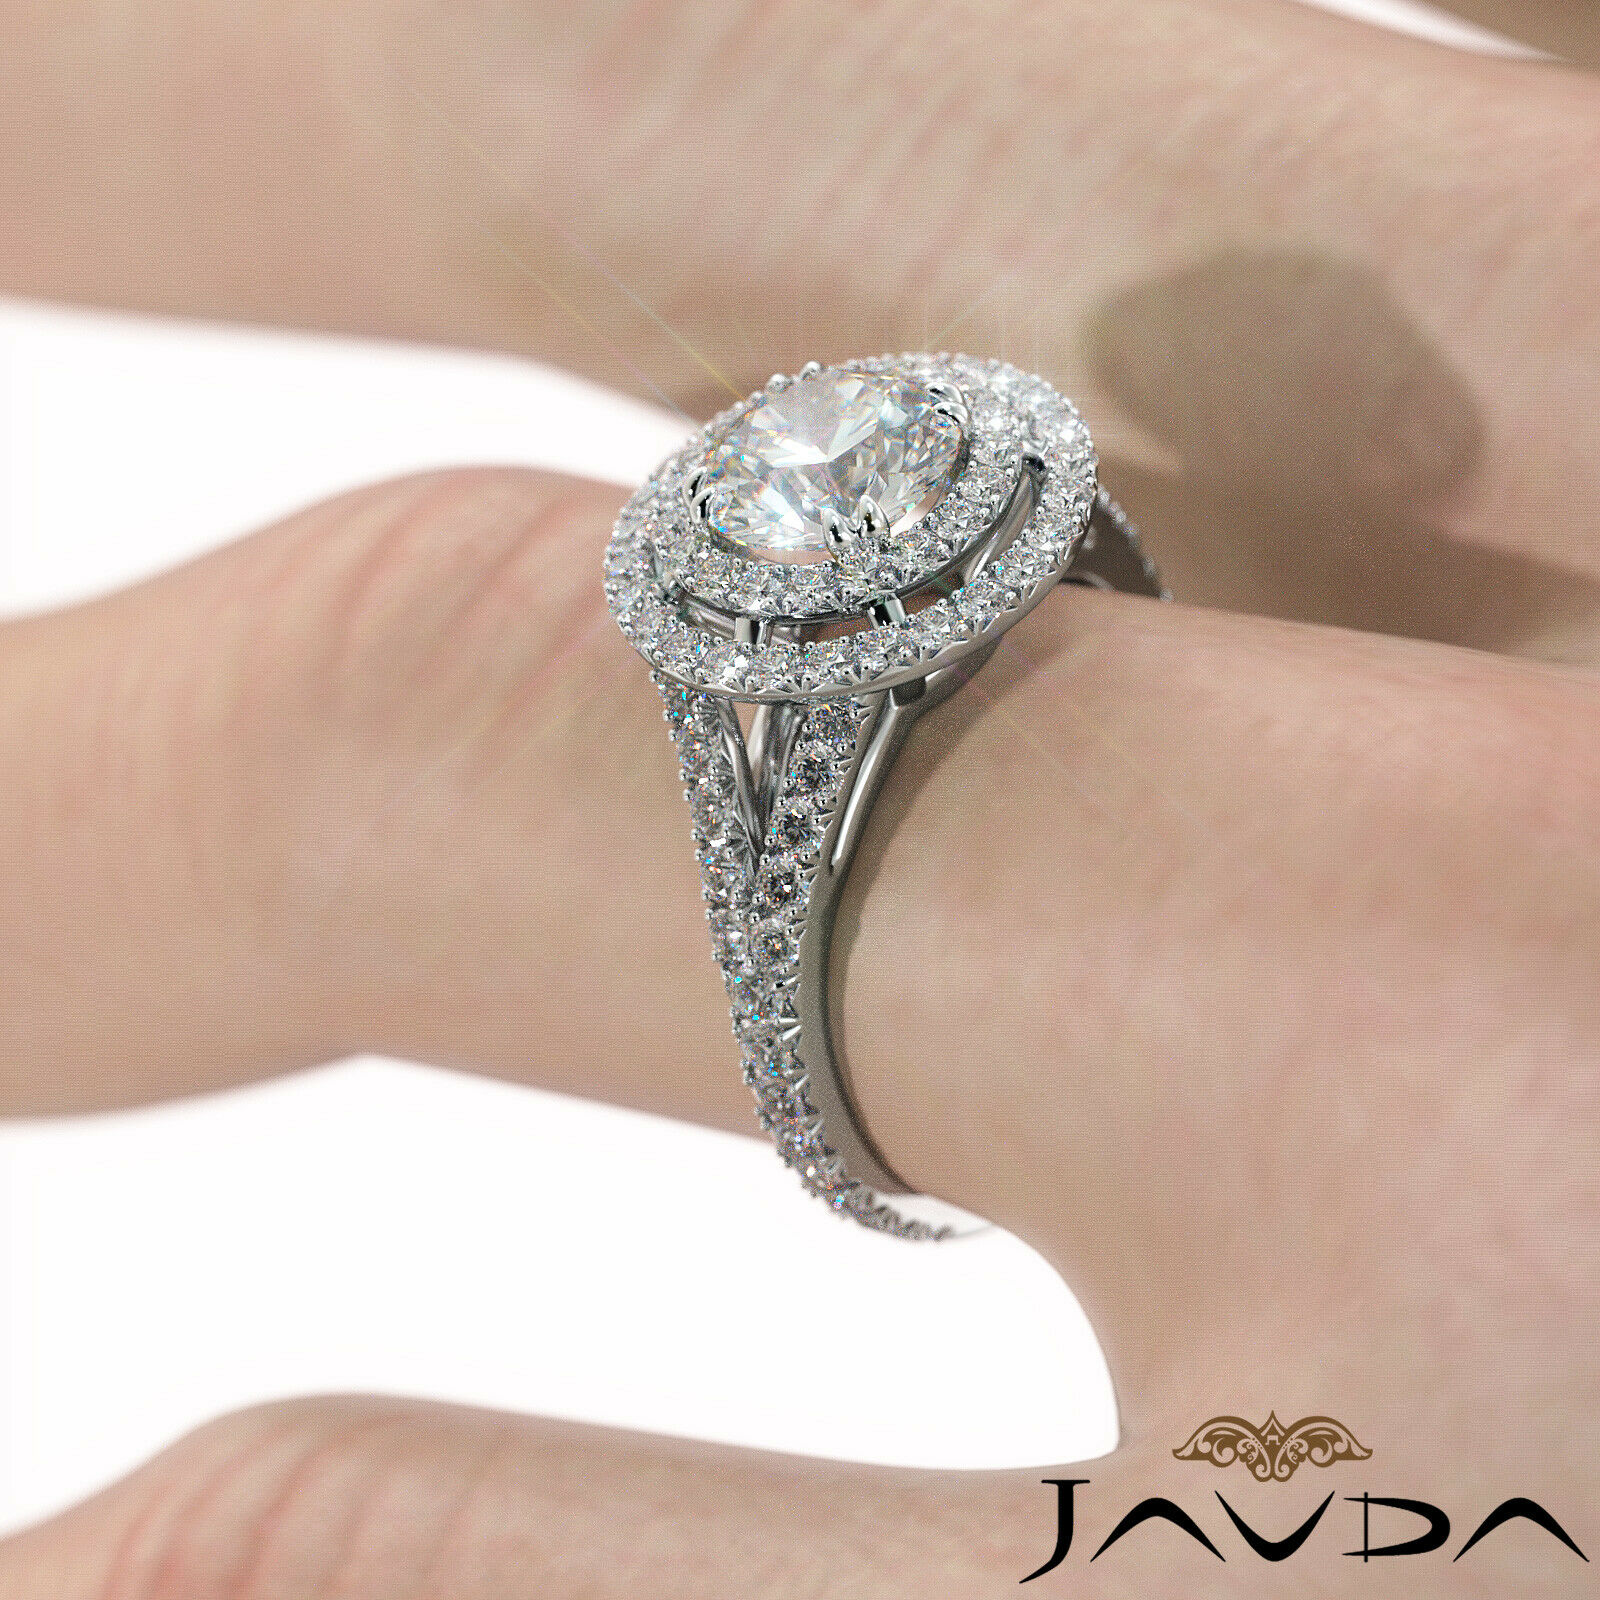 2.05ct French Pave Gala Halo Round Diamond Engagement Ring GIA F-VVS1 White Gold 7